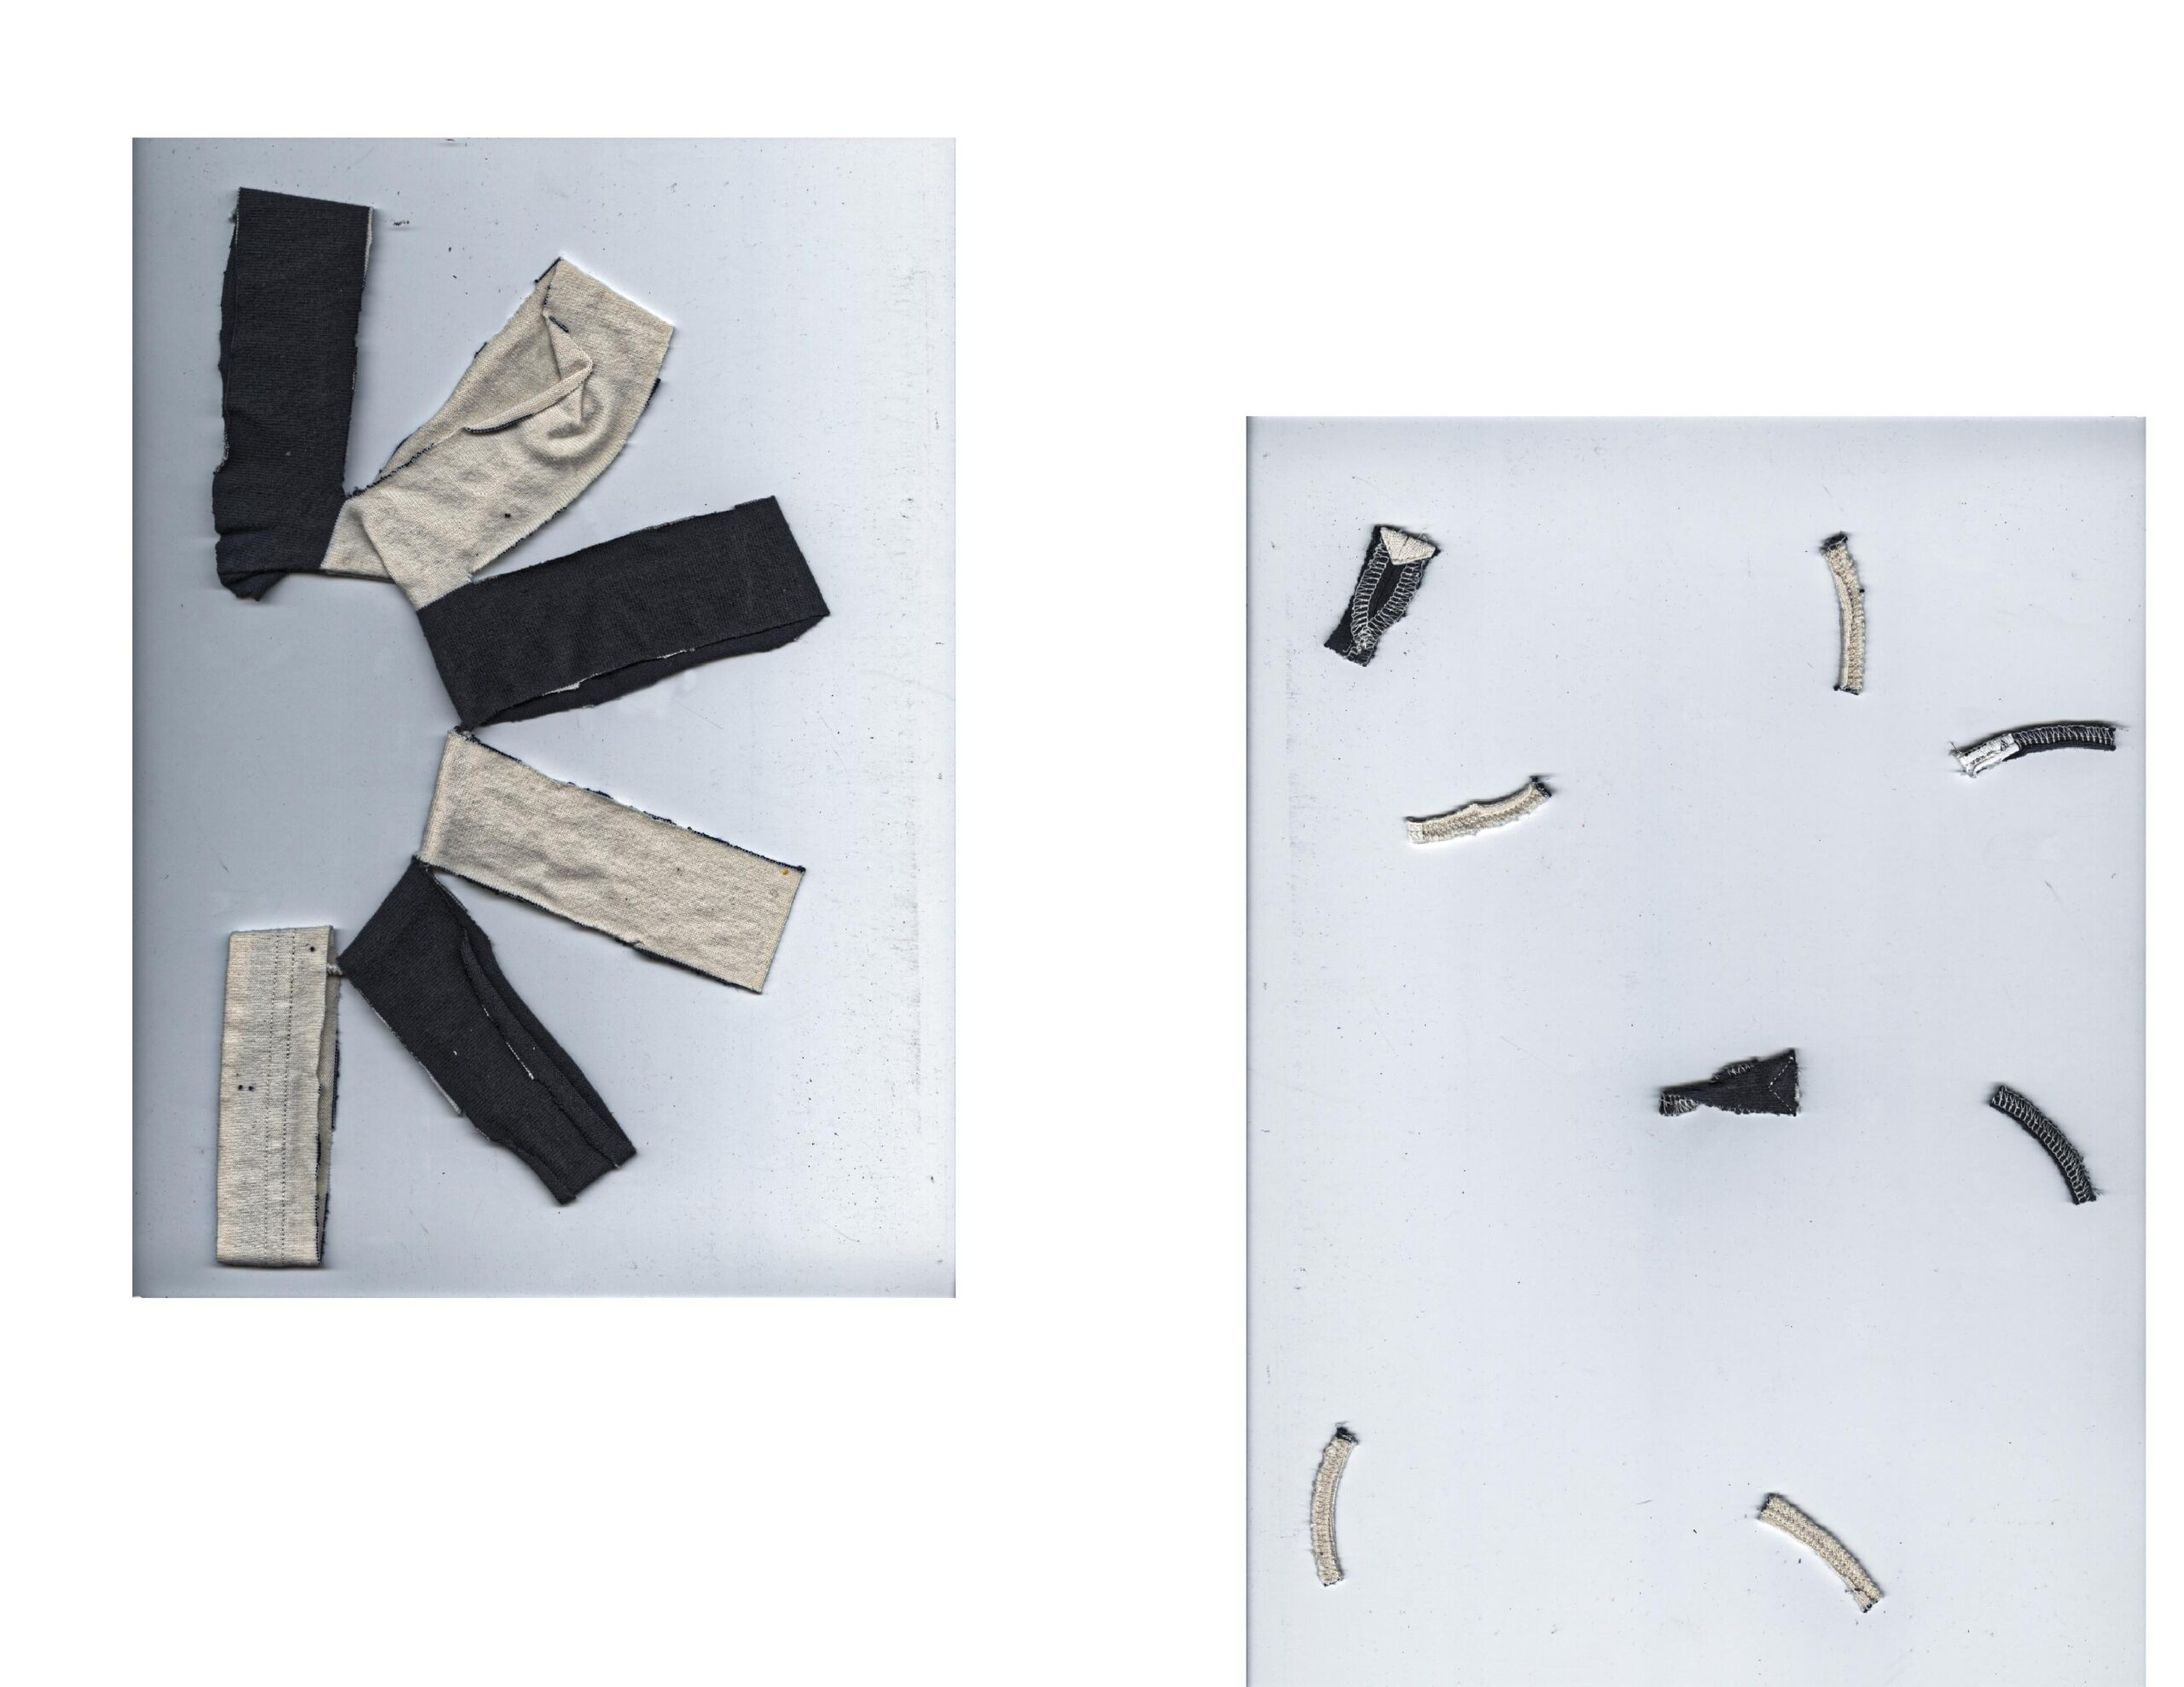 Deconstructed t-shirt - Fragments - by Tricia Crivellaro